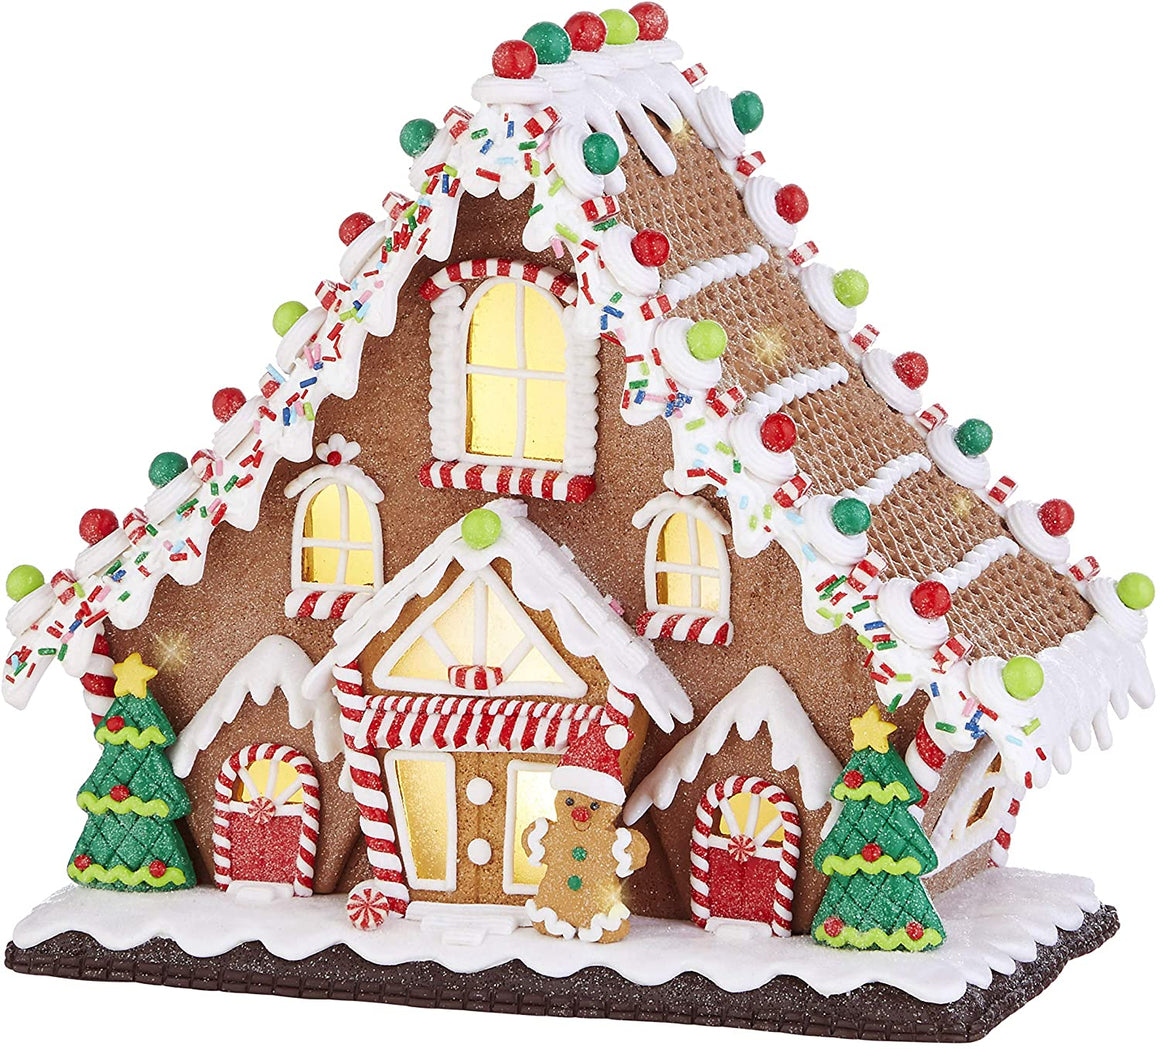 TenWaterloo Large Lighted Gingerbread Candy House in Clay Dough Resin with Frosted Snow Look, Battery Operated, 10.5 inches Wide x 9.5 Inches High